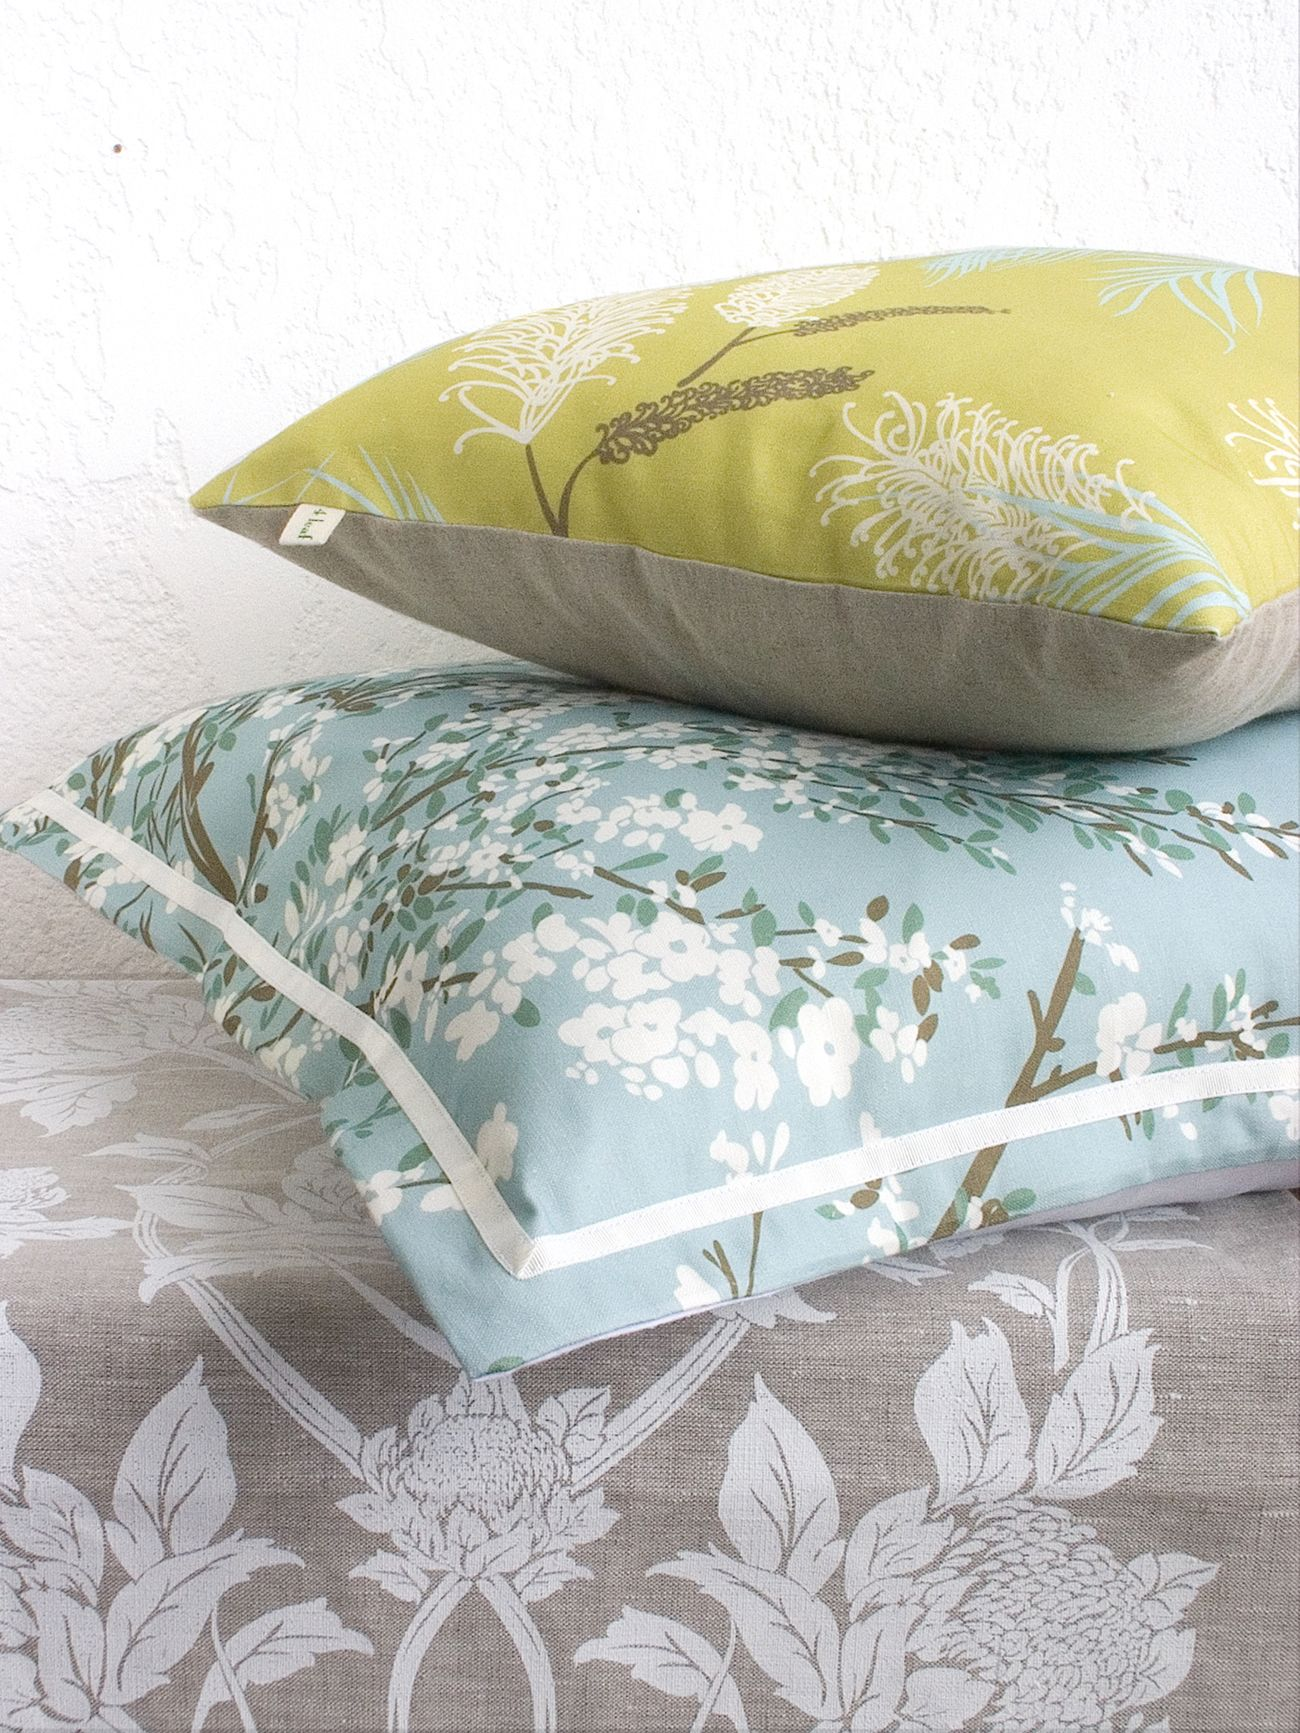 leaf clover grevillea cushion cover in chartreuse cotton linen